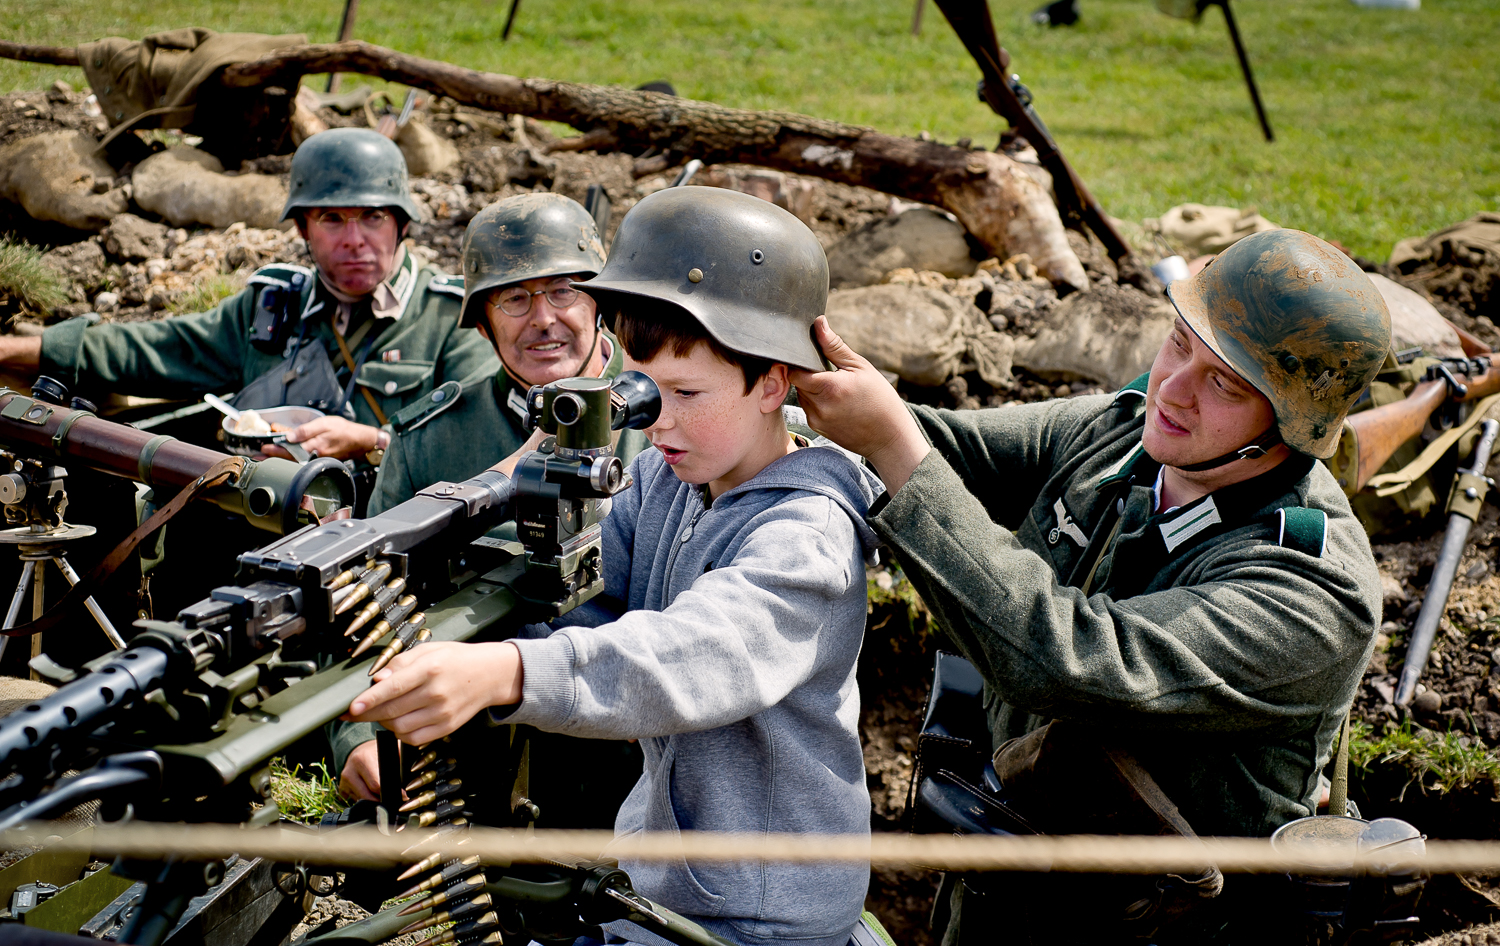 young visitor invited into machine gun post, Re-enactment event in Essex